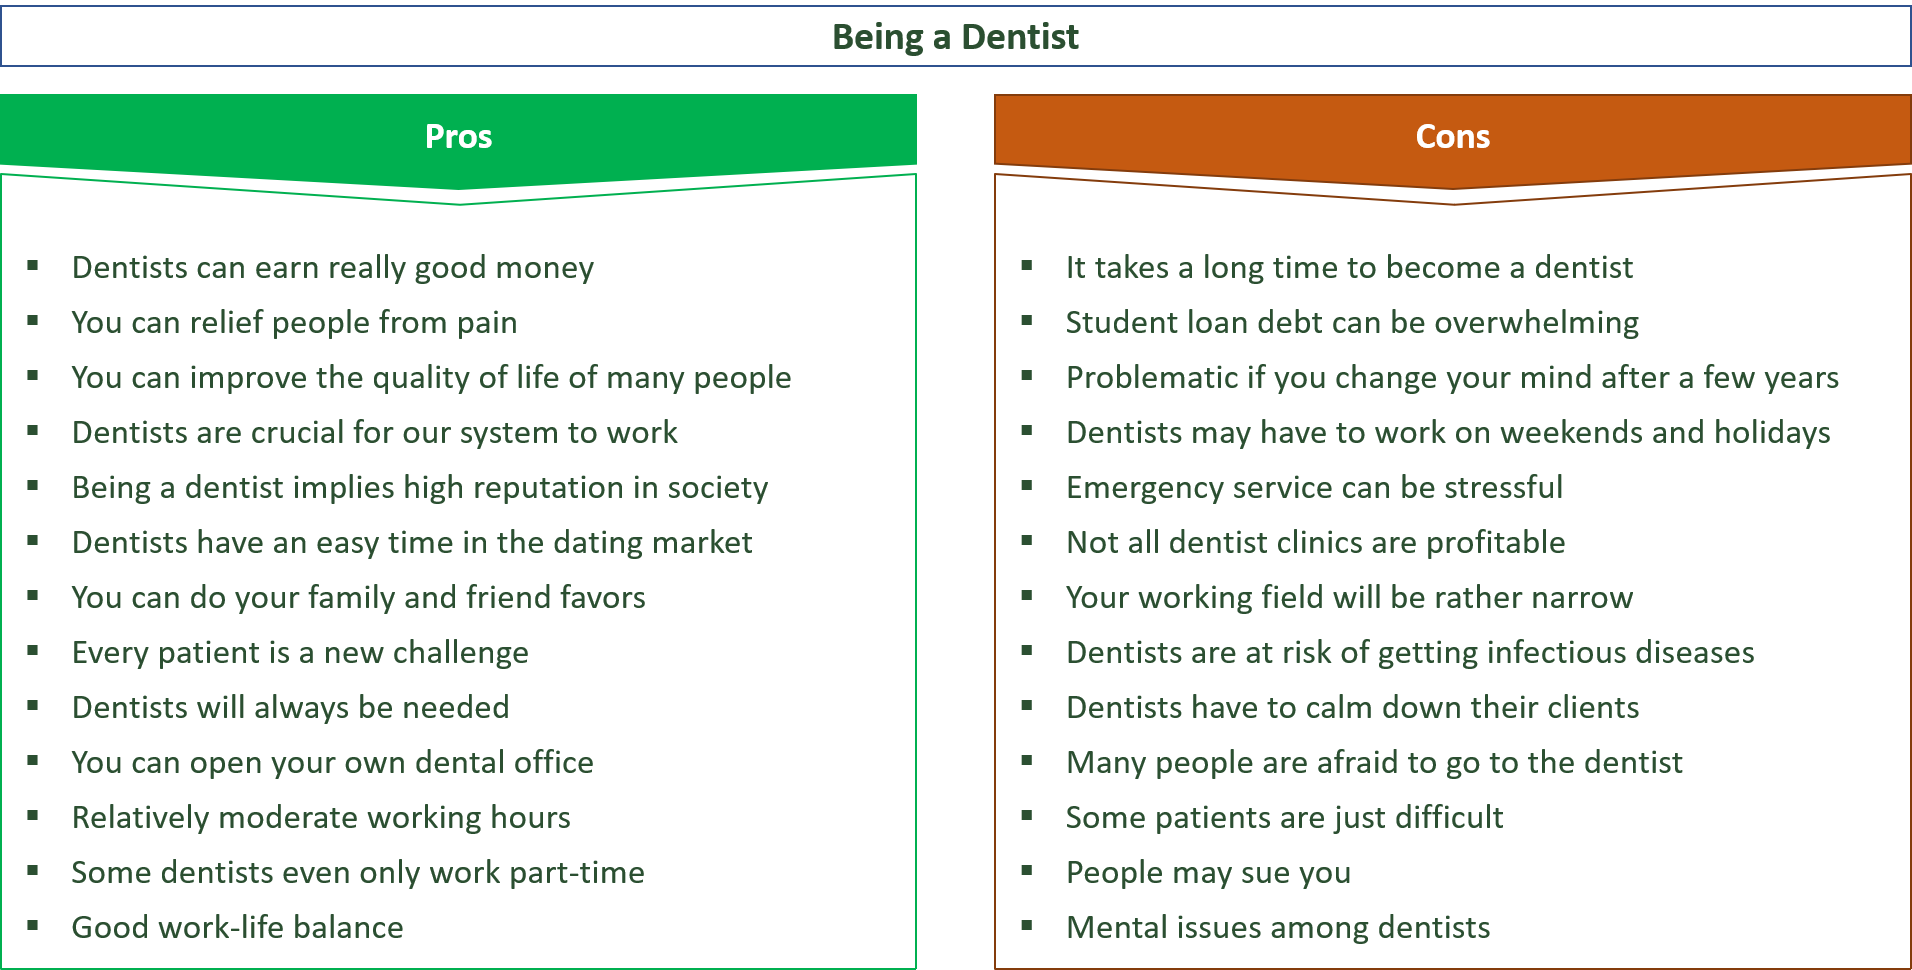 advantages and disadvantages of being a dentist